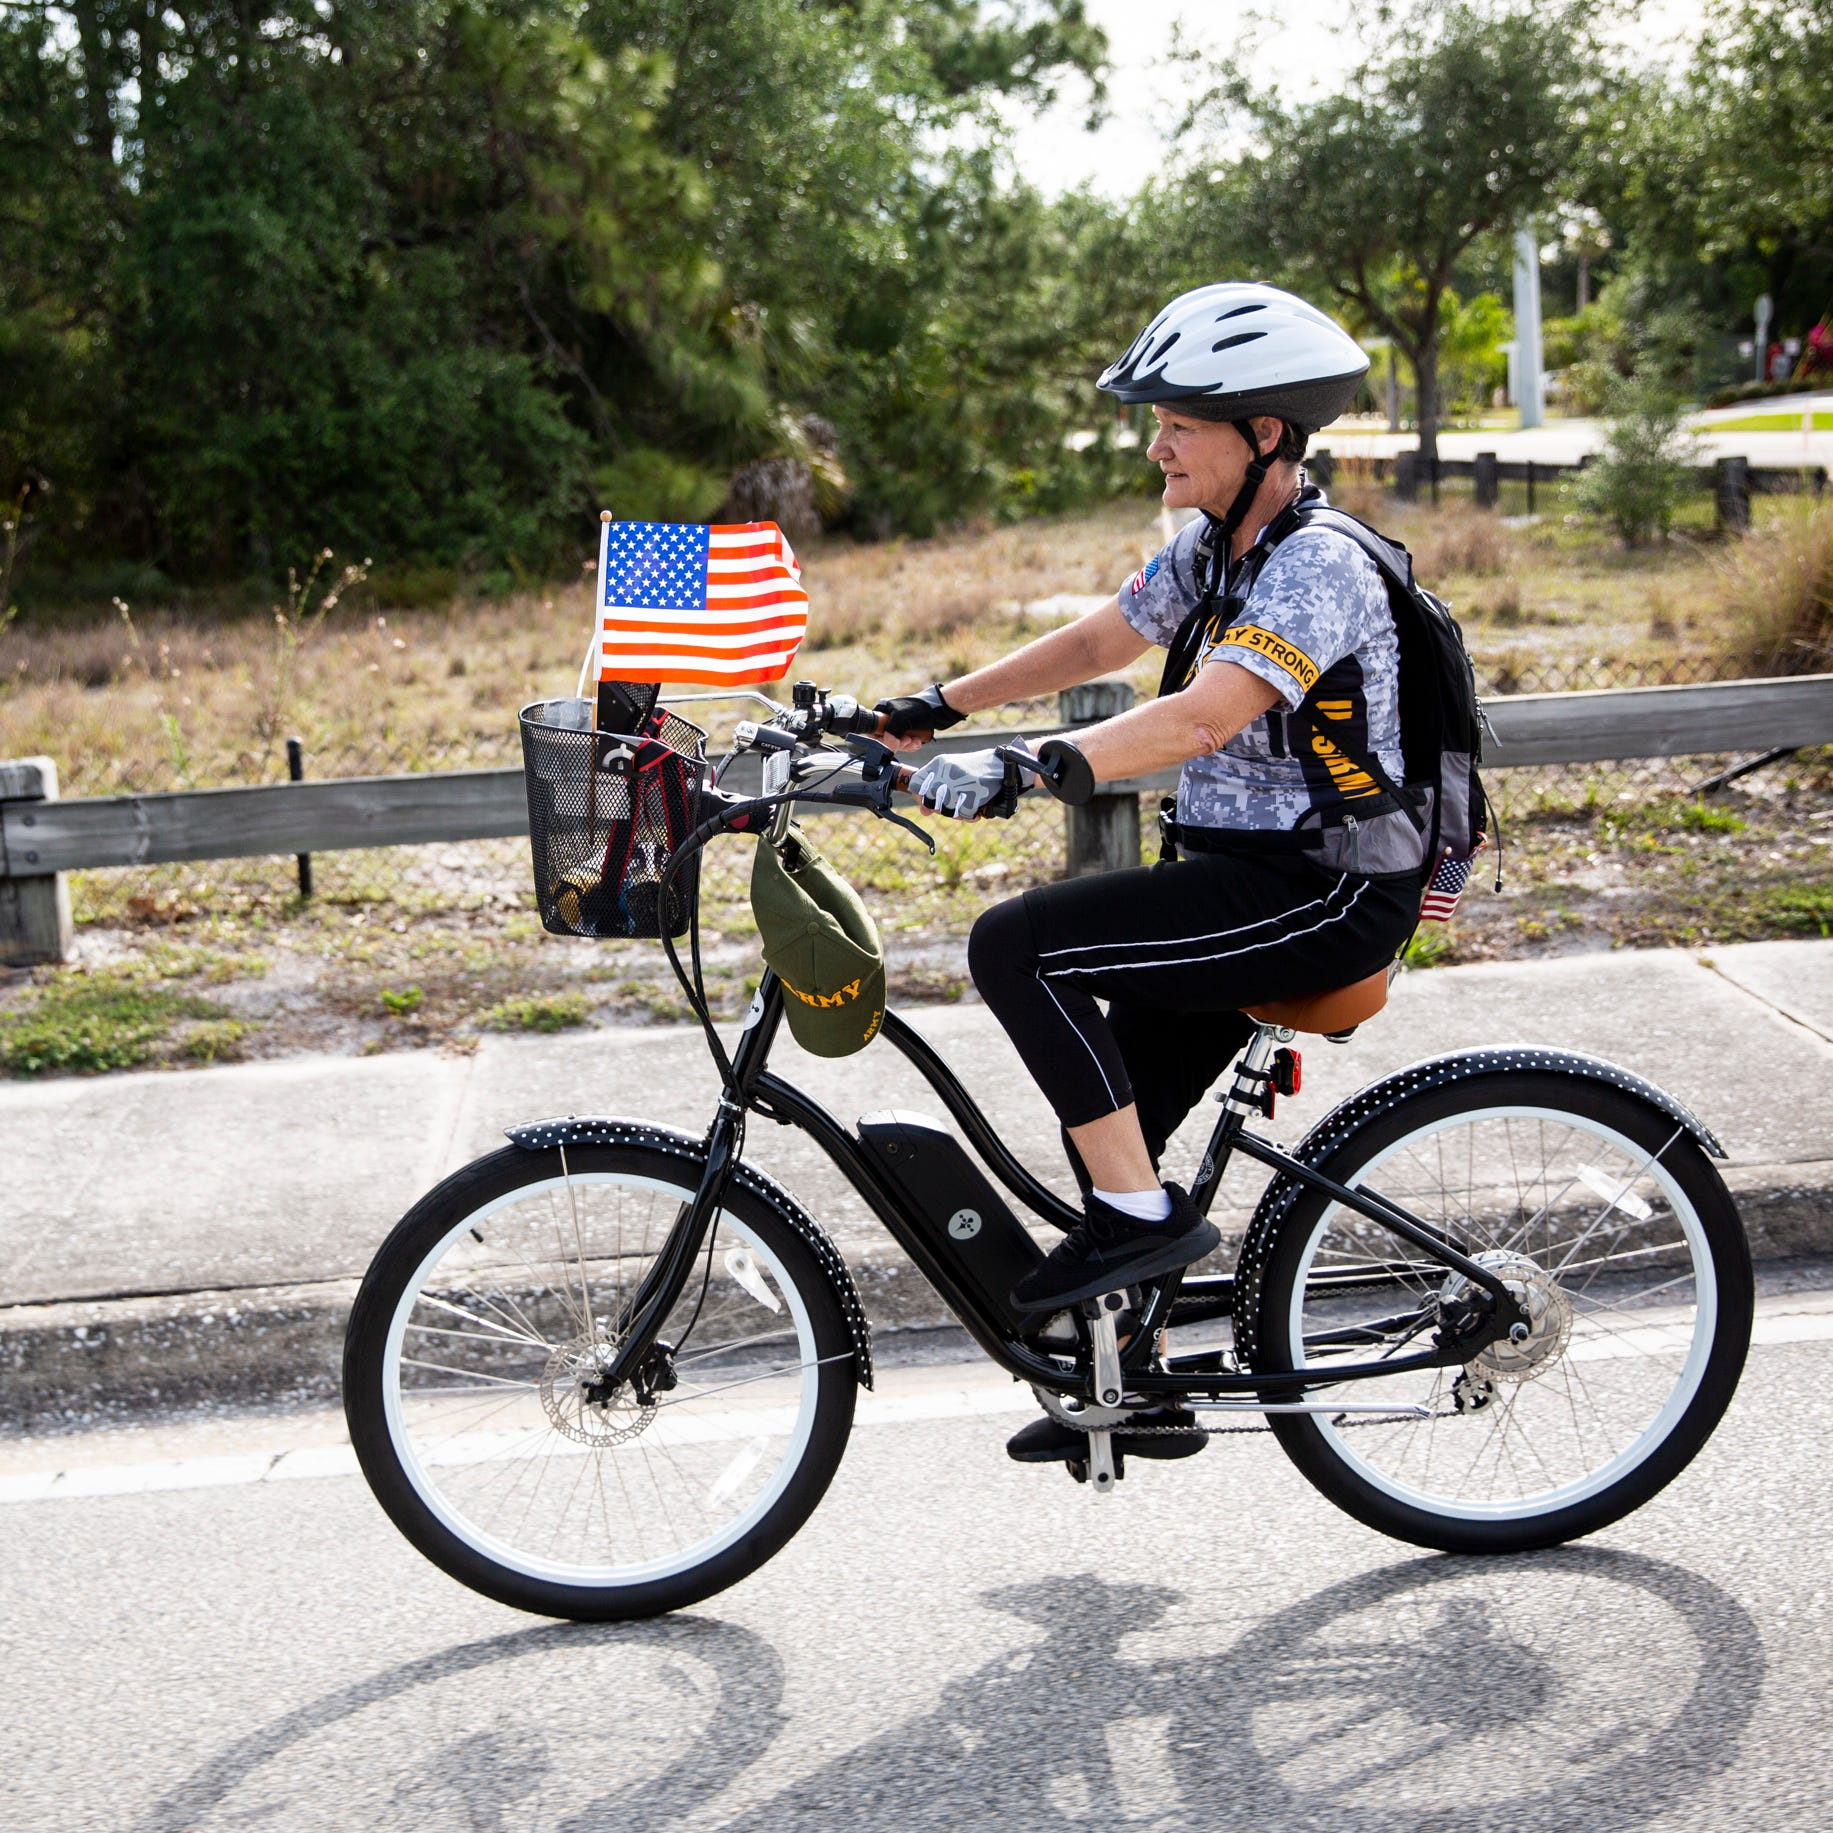 Army veteran gives thanks through 40-mile trip on electric bike